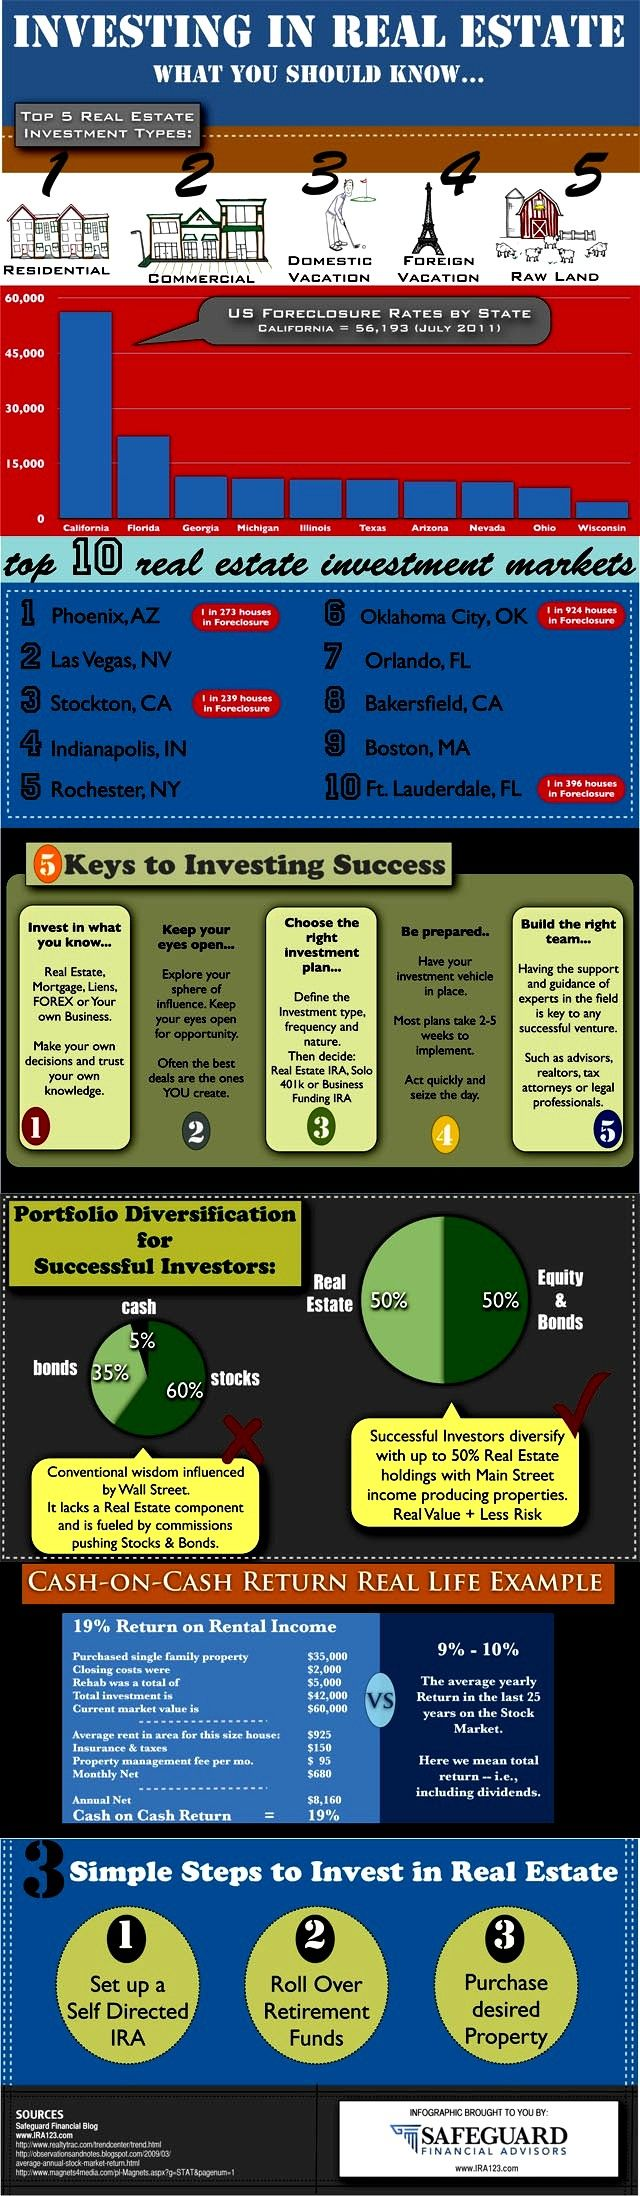 Investing in Florida Real Estate. www.EyemarkRealty.com, www.AmericaUSARealEstate.com